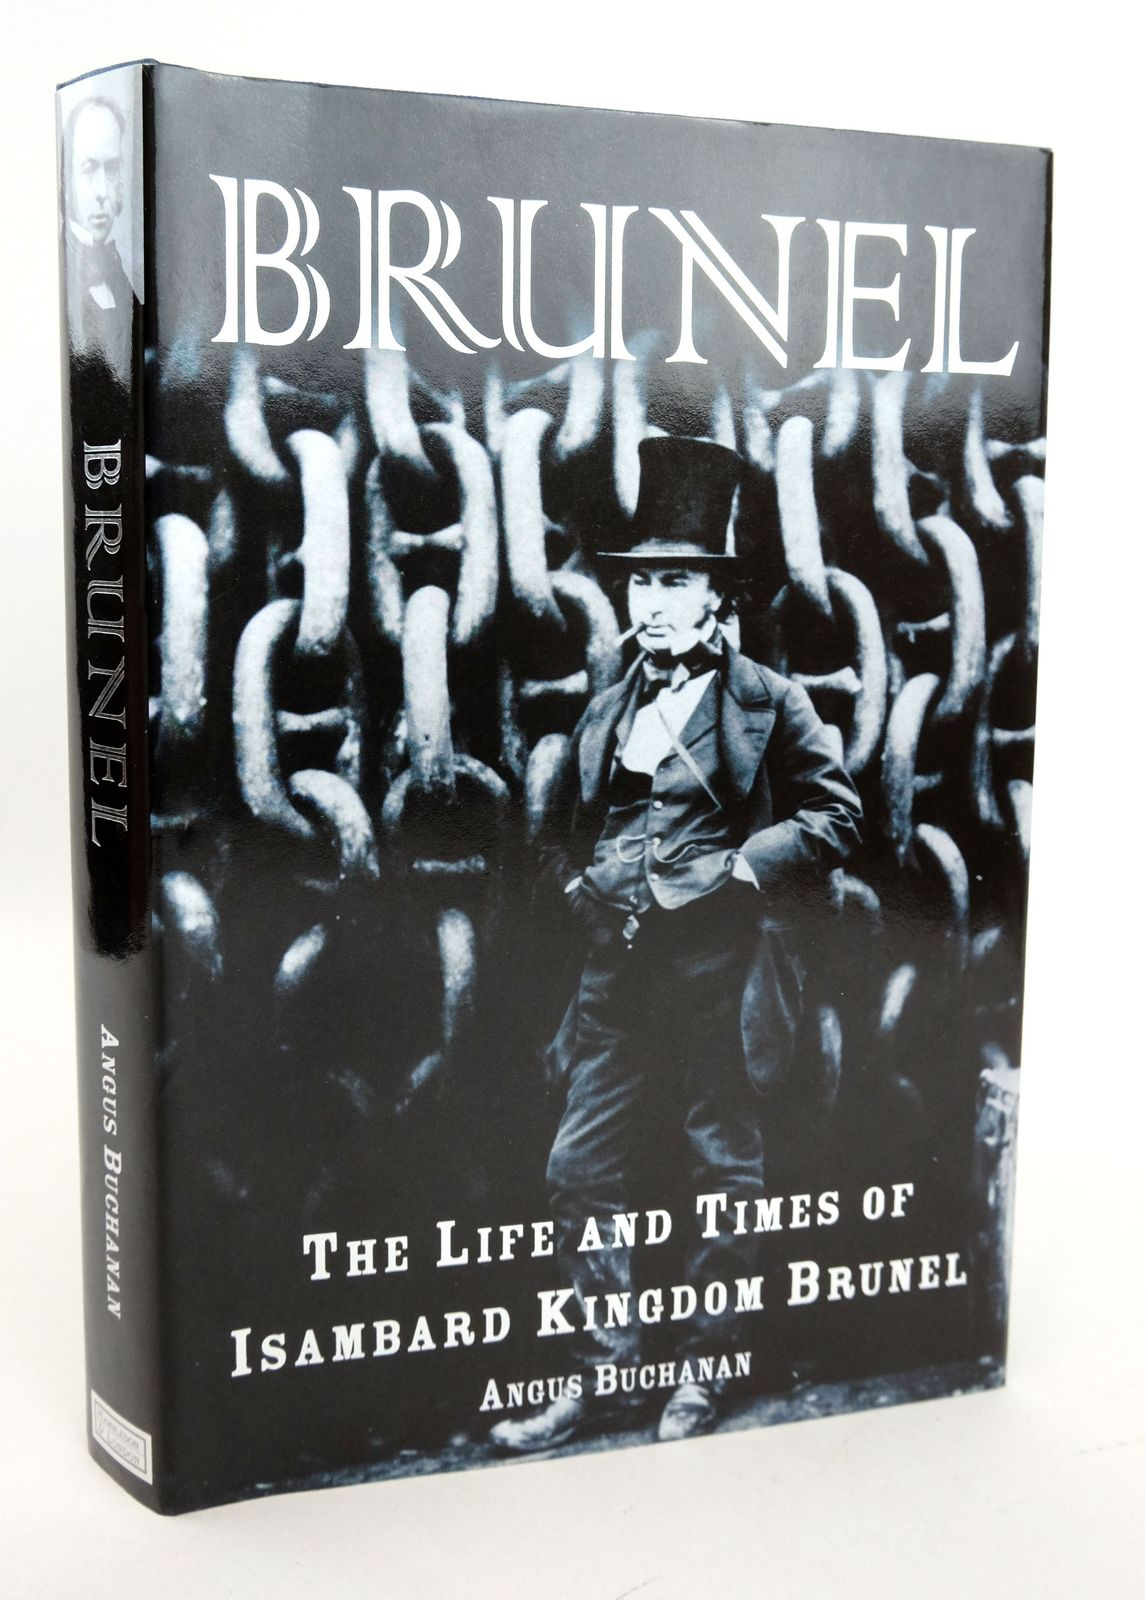 Photo of BRUNEL: THE LIFE AND TIMES OF ISAMBARD KINGDOM BRUNEL- Stock Number: 1819377